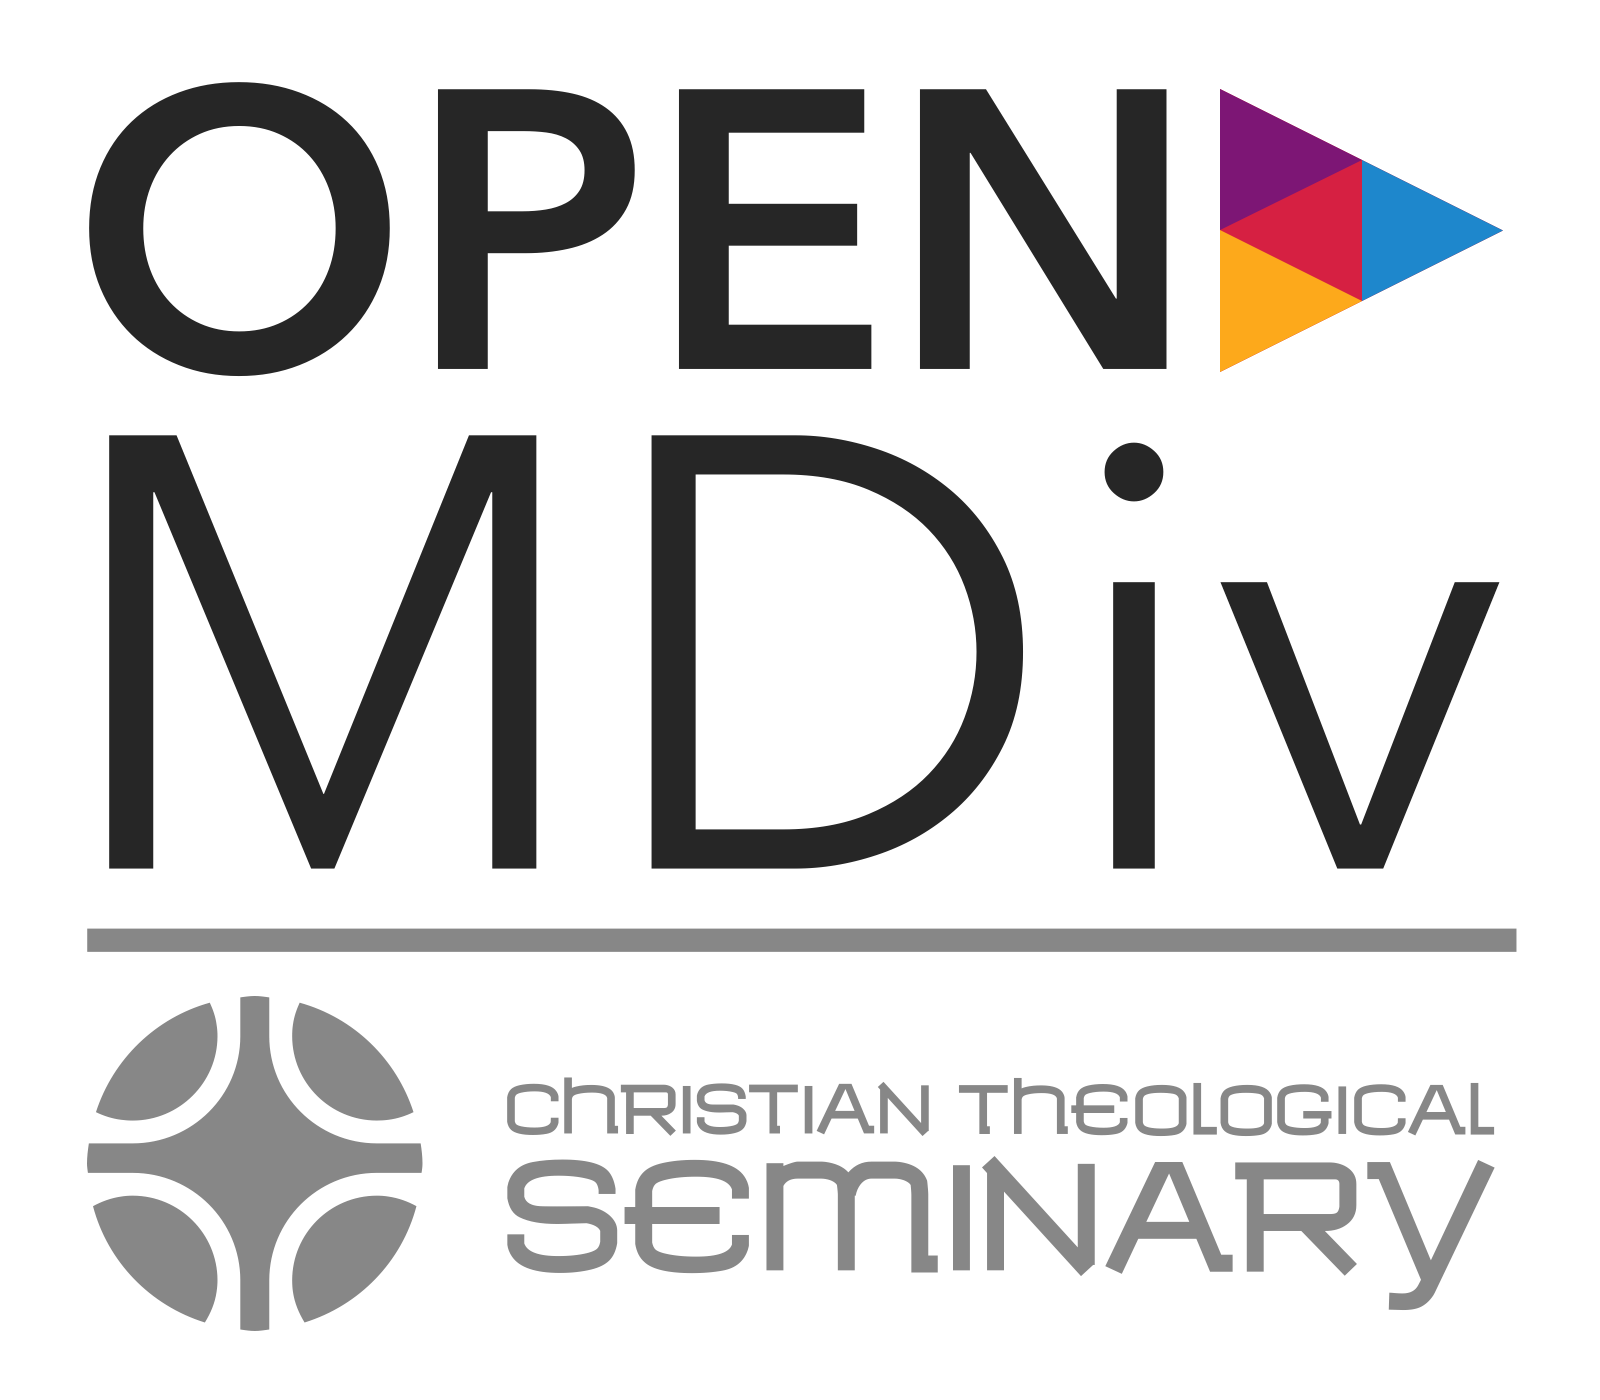 The OPEN MDiv degree program meets the urgent need for leaders formed in faith, who are prepared to address the educational, social, economic and technological shifts in theology and the church. Providing a new way to acquire this forward-thinking MDiv. this program doesn't require students to relocate. Instead, you can immerse yourself in studies with brilliant practitioners and thought leaders at sessions all over the U.S.